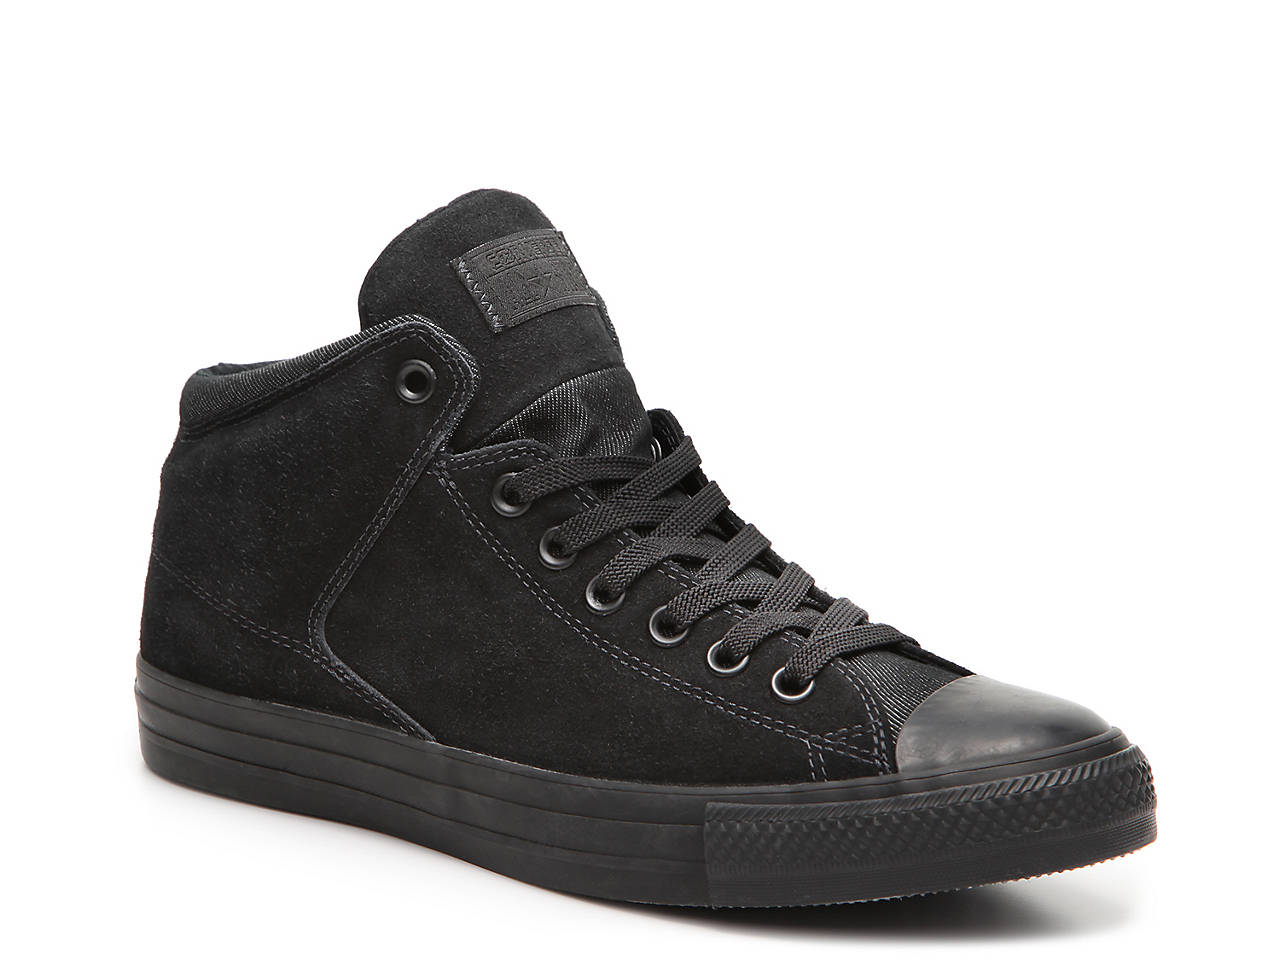 Converse Chuck Taylor All Star High Street Suede & Thermal Sale Online Shop 7kq12